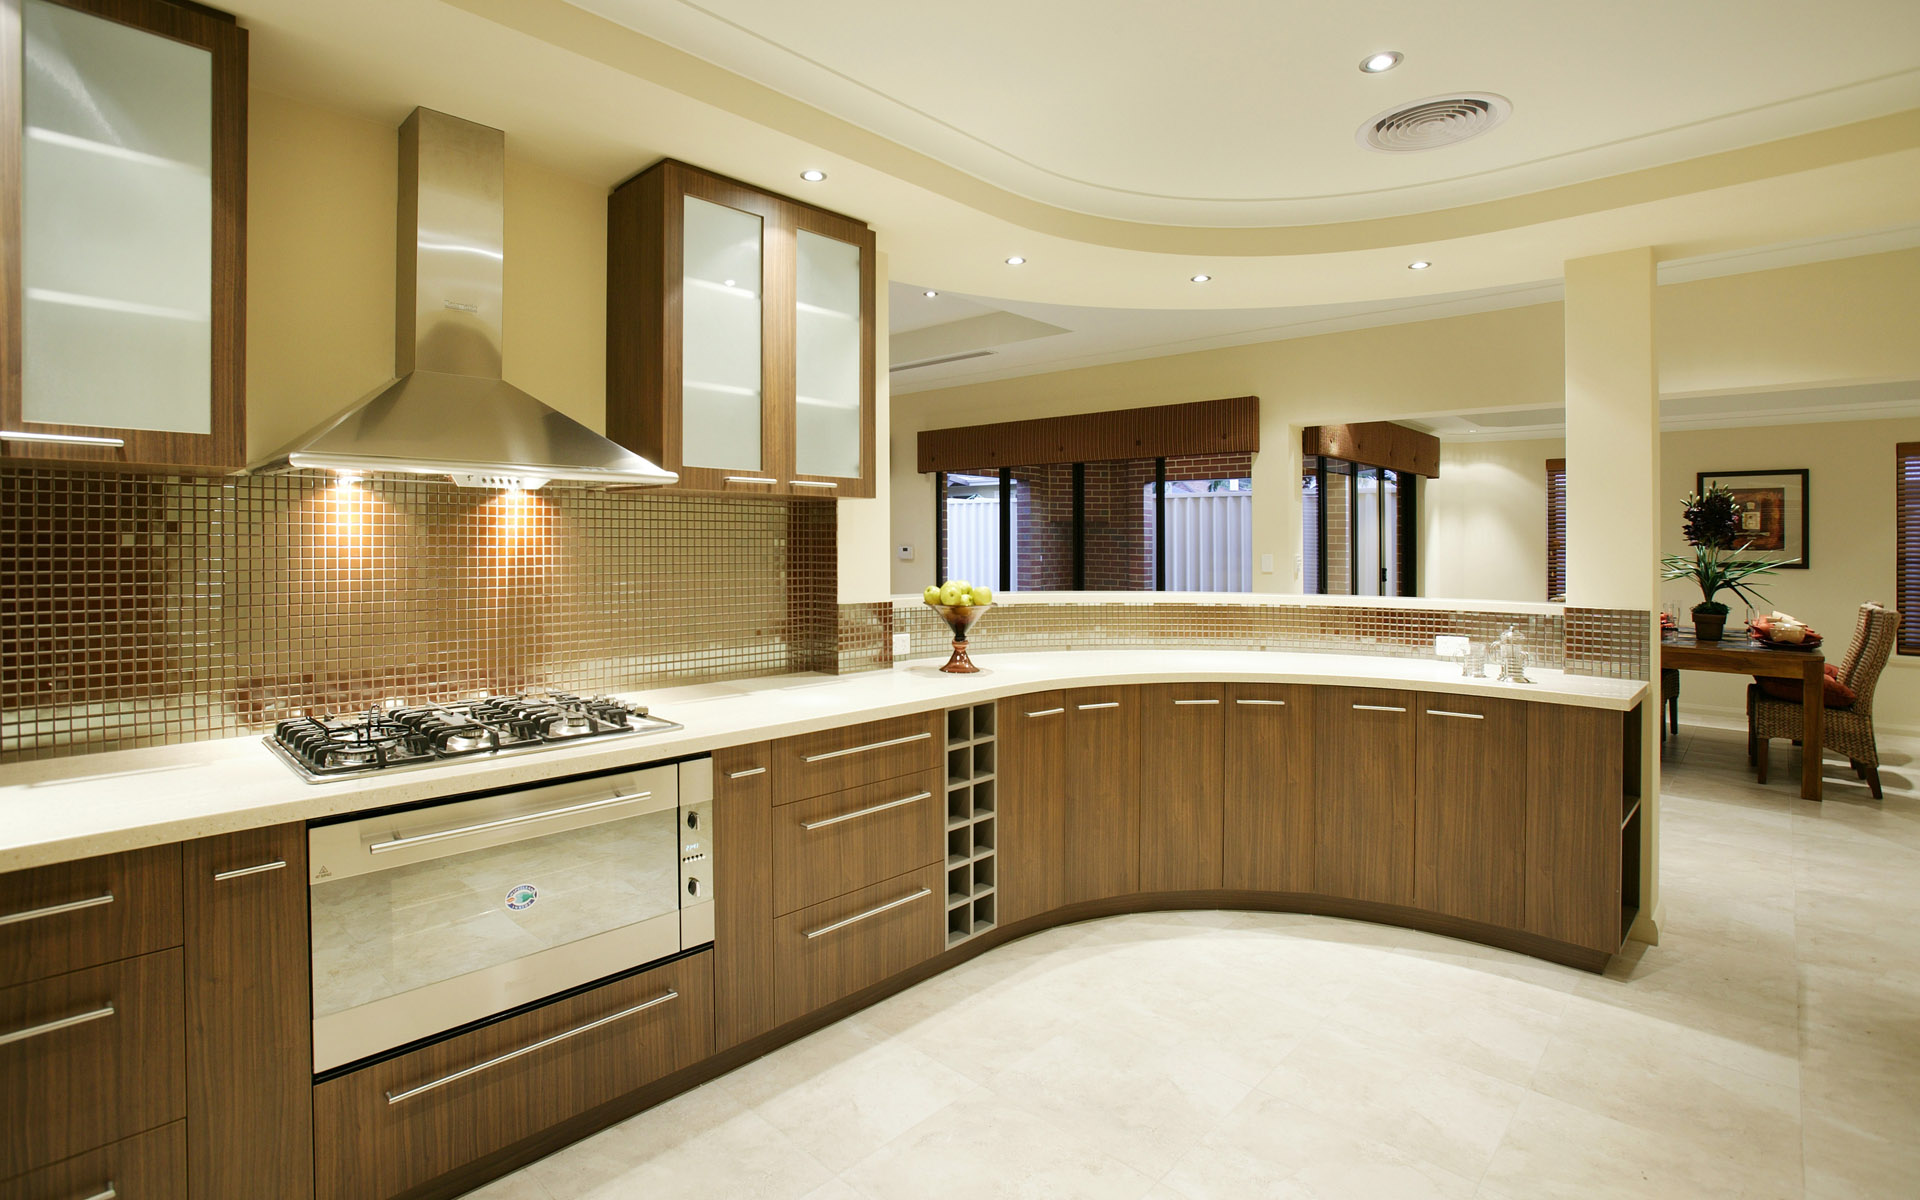 New Modern Kitchen Design New Modern Kitchen Design